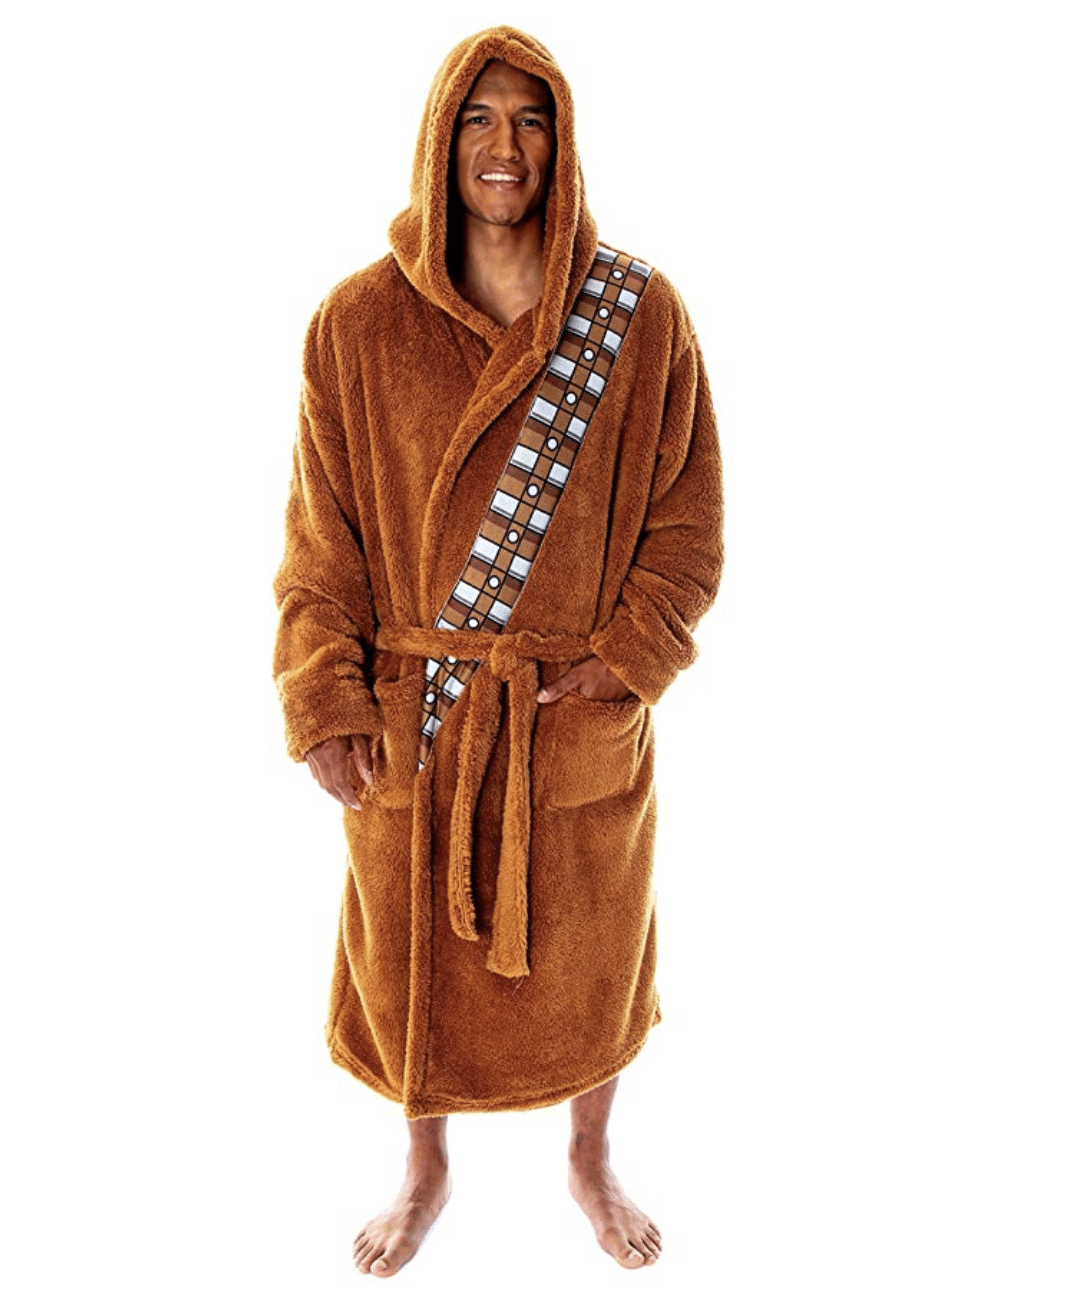 star-wars-gifts-for-men-robe